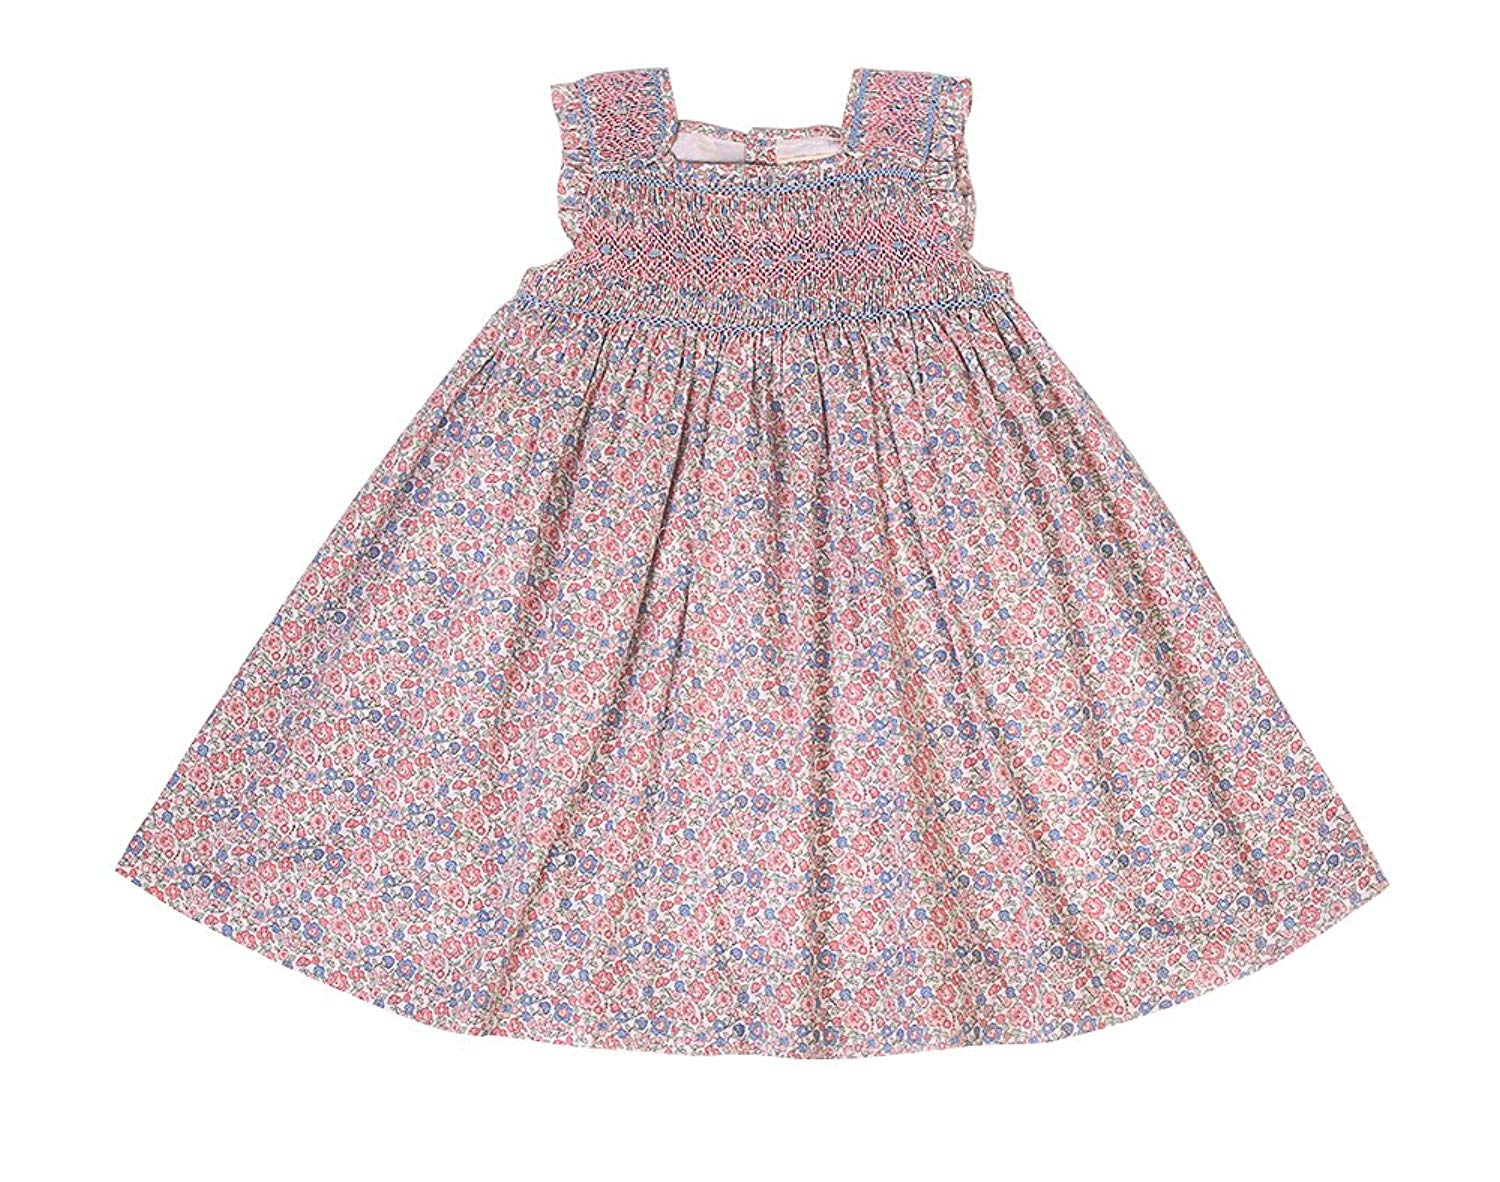 e6f5f9e72fe4 Get Quotations · Phlona Little Girls' Rose and Blue Floral Smocked Dress